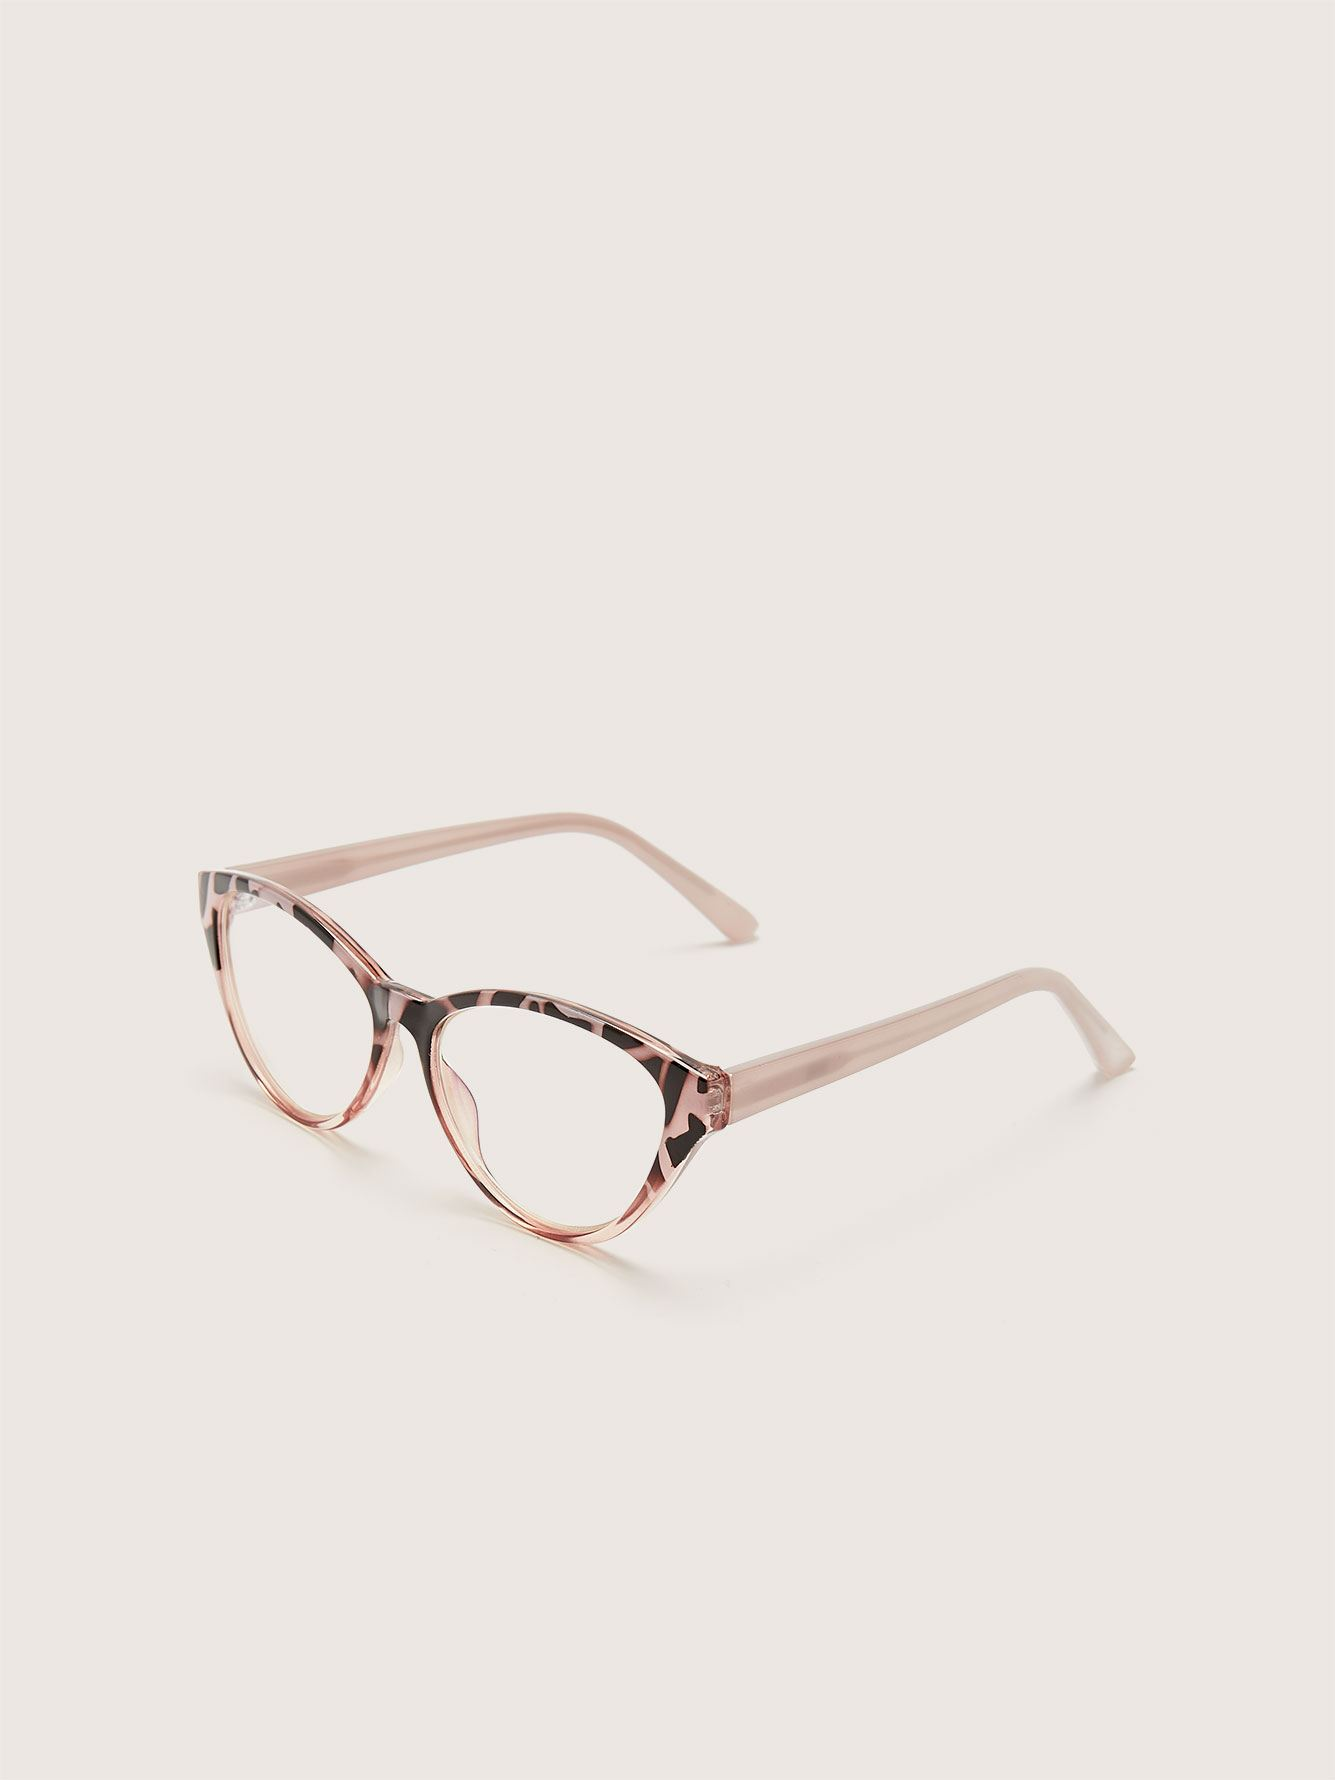 Blue Lens Tortoise Glasses - Addition Elle